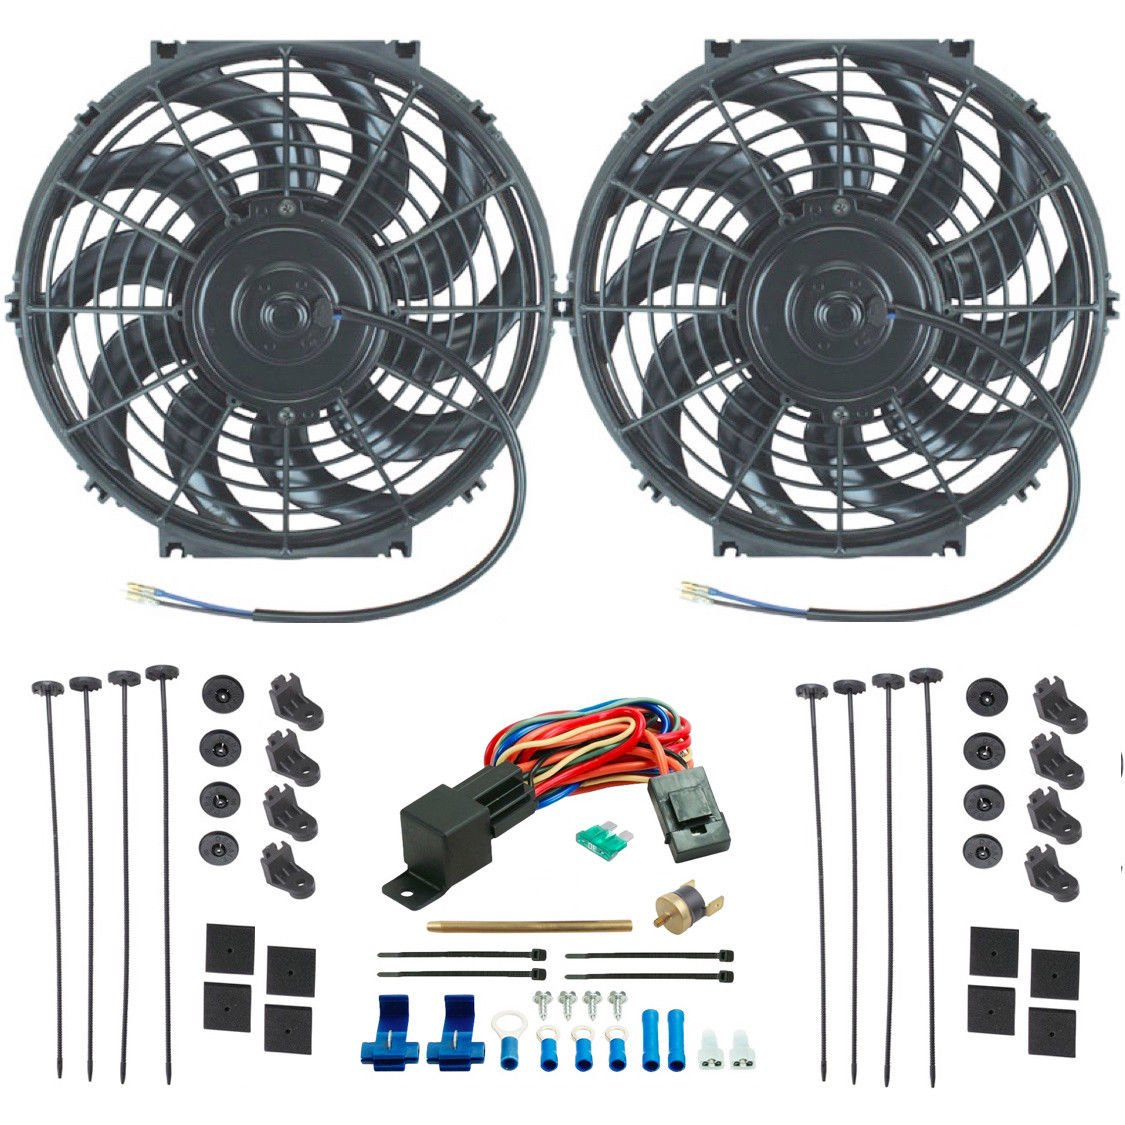 "American Volt Dual 12"" Inch Electric Radiator Cooling Fans Fin Probe Fan Thermostat Switch Kit"